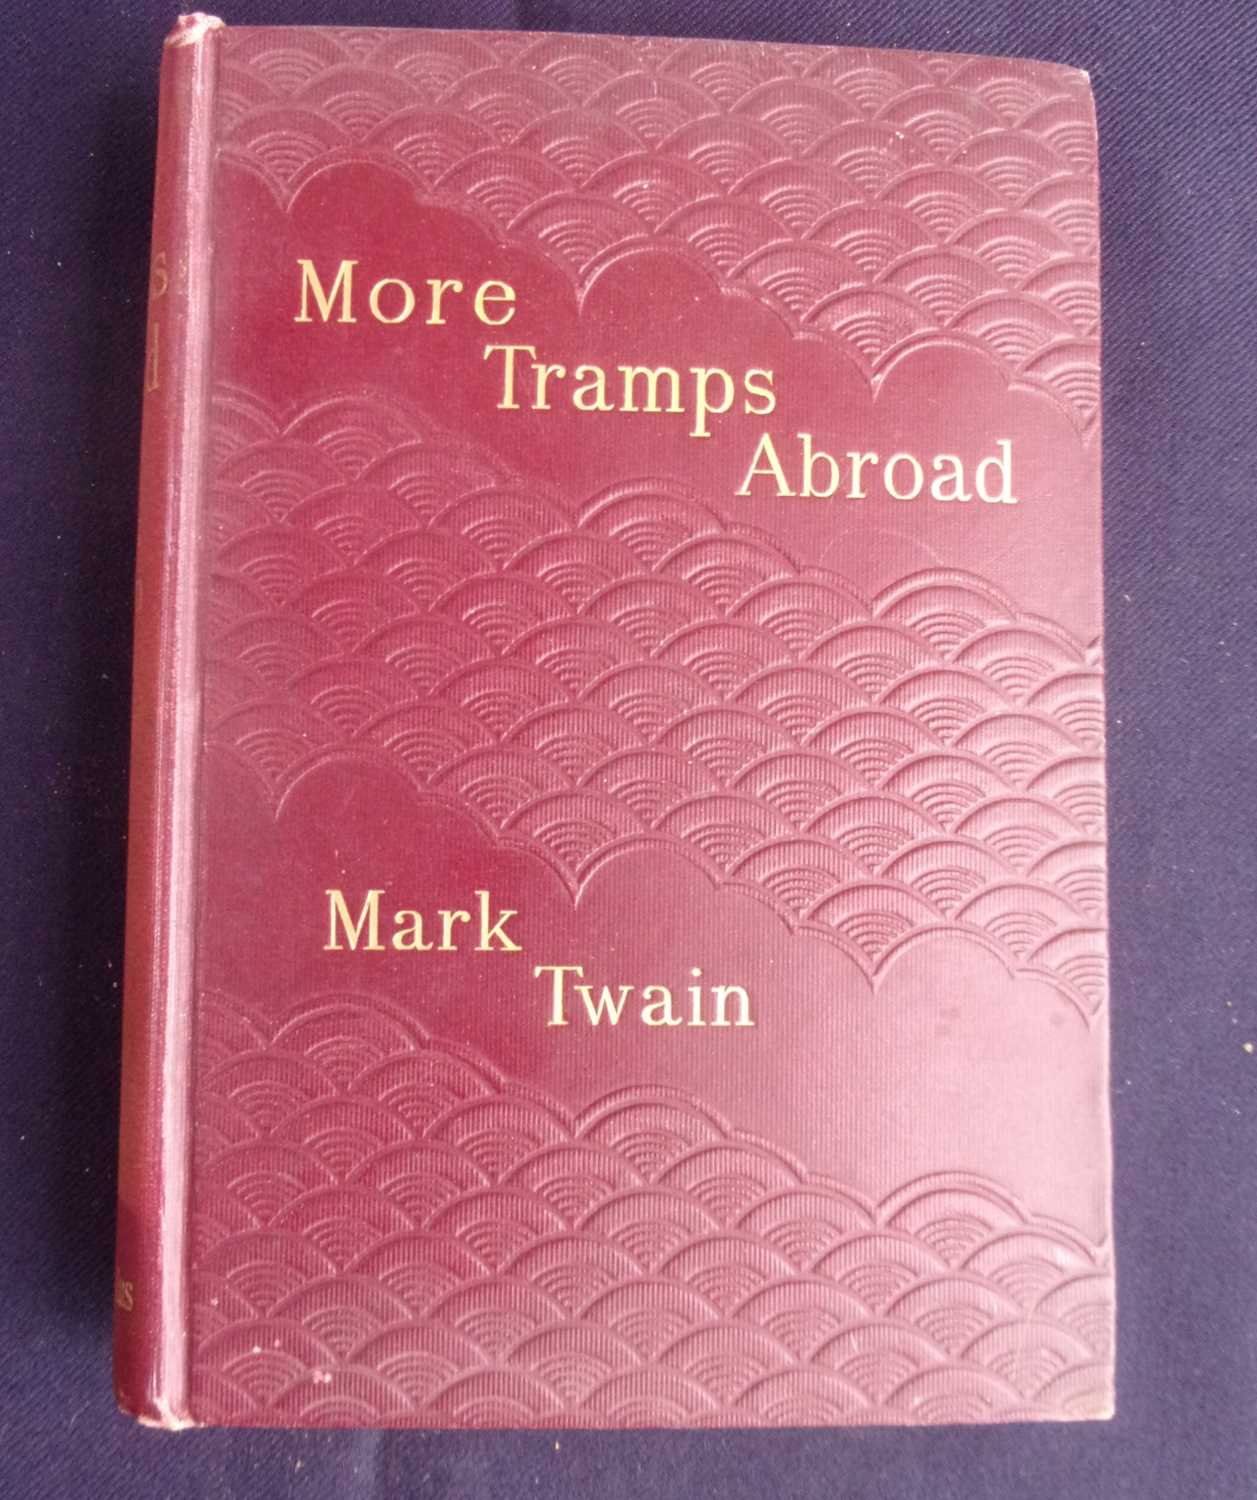 Lot 3008 - TWAIN, Mark. More Tramps Abroad. Chatto &...